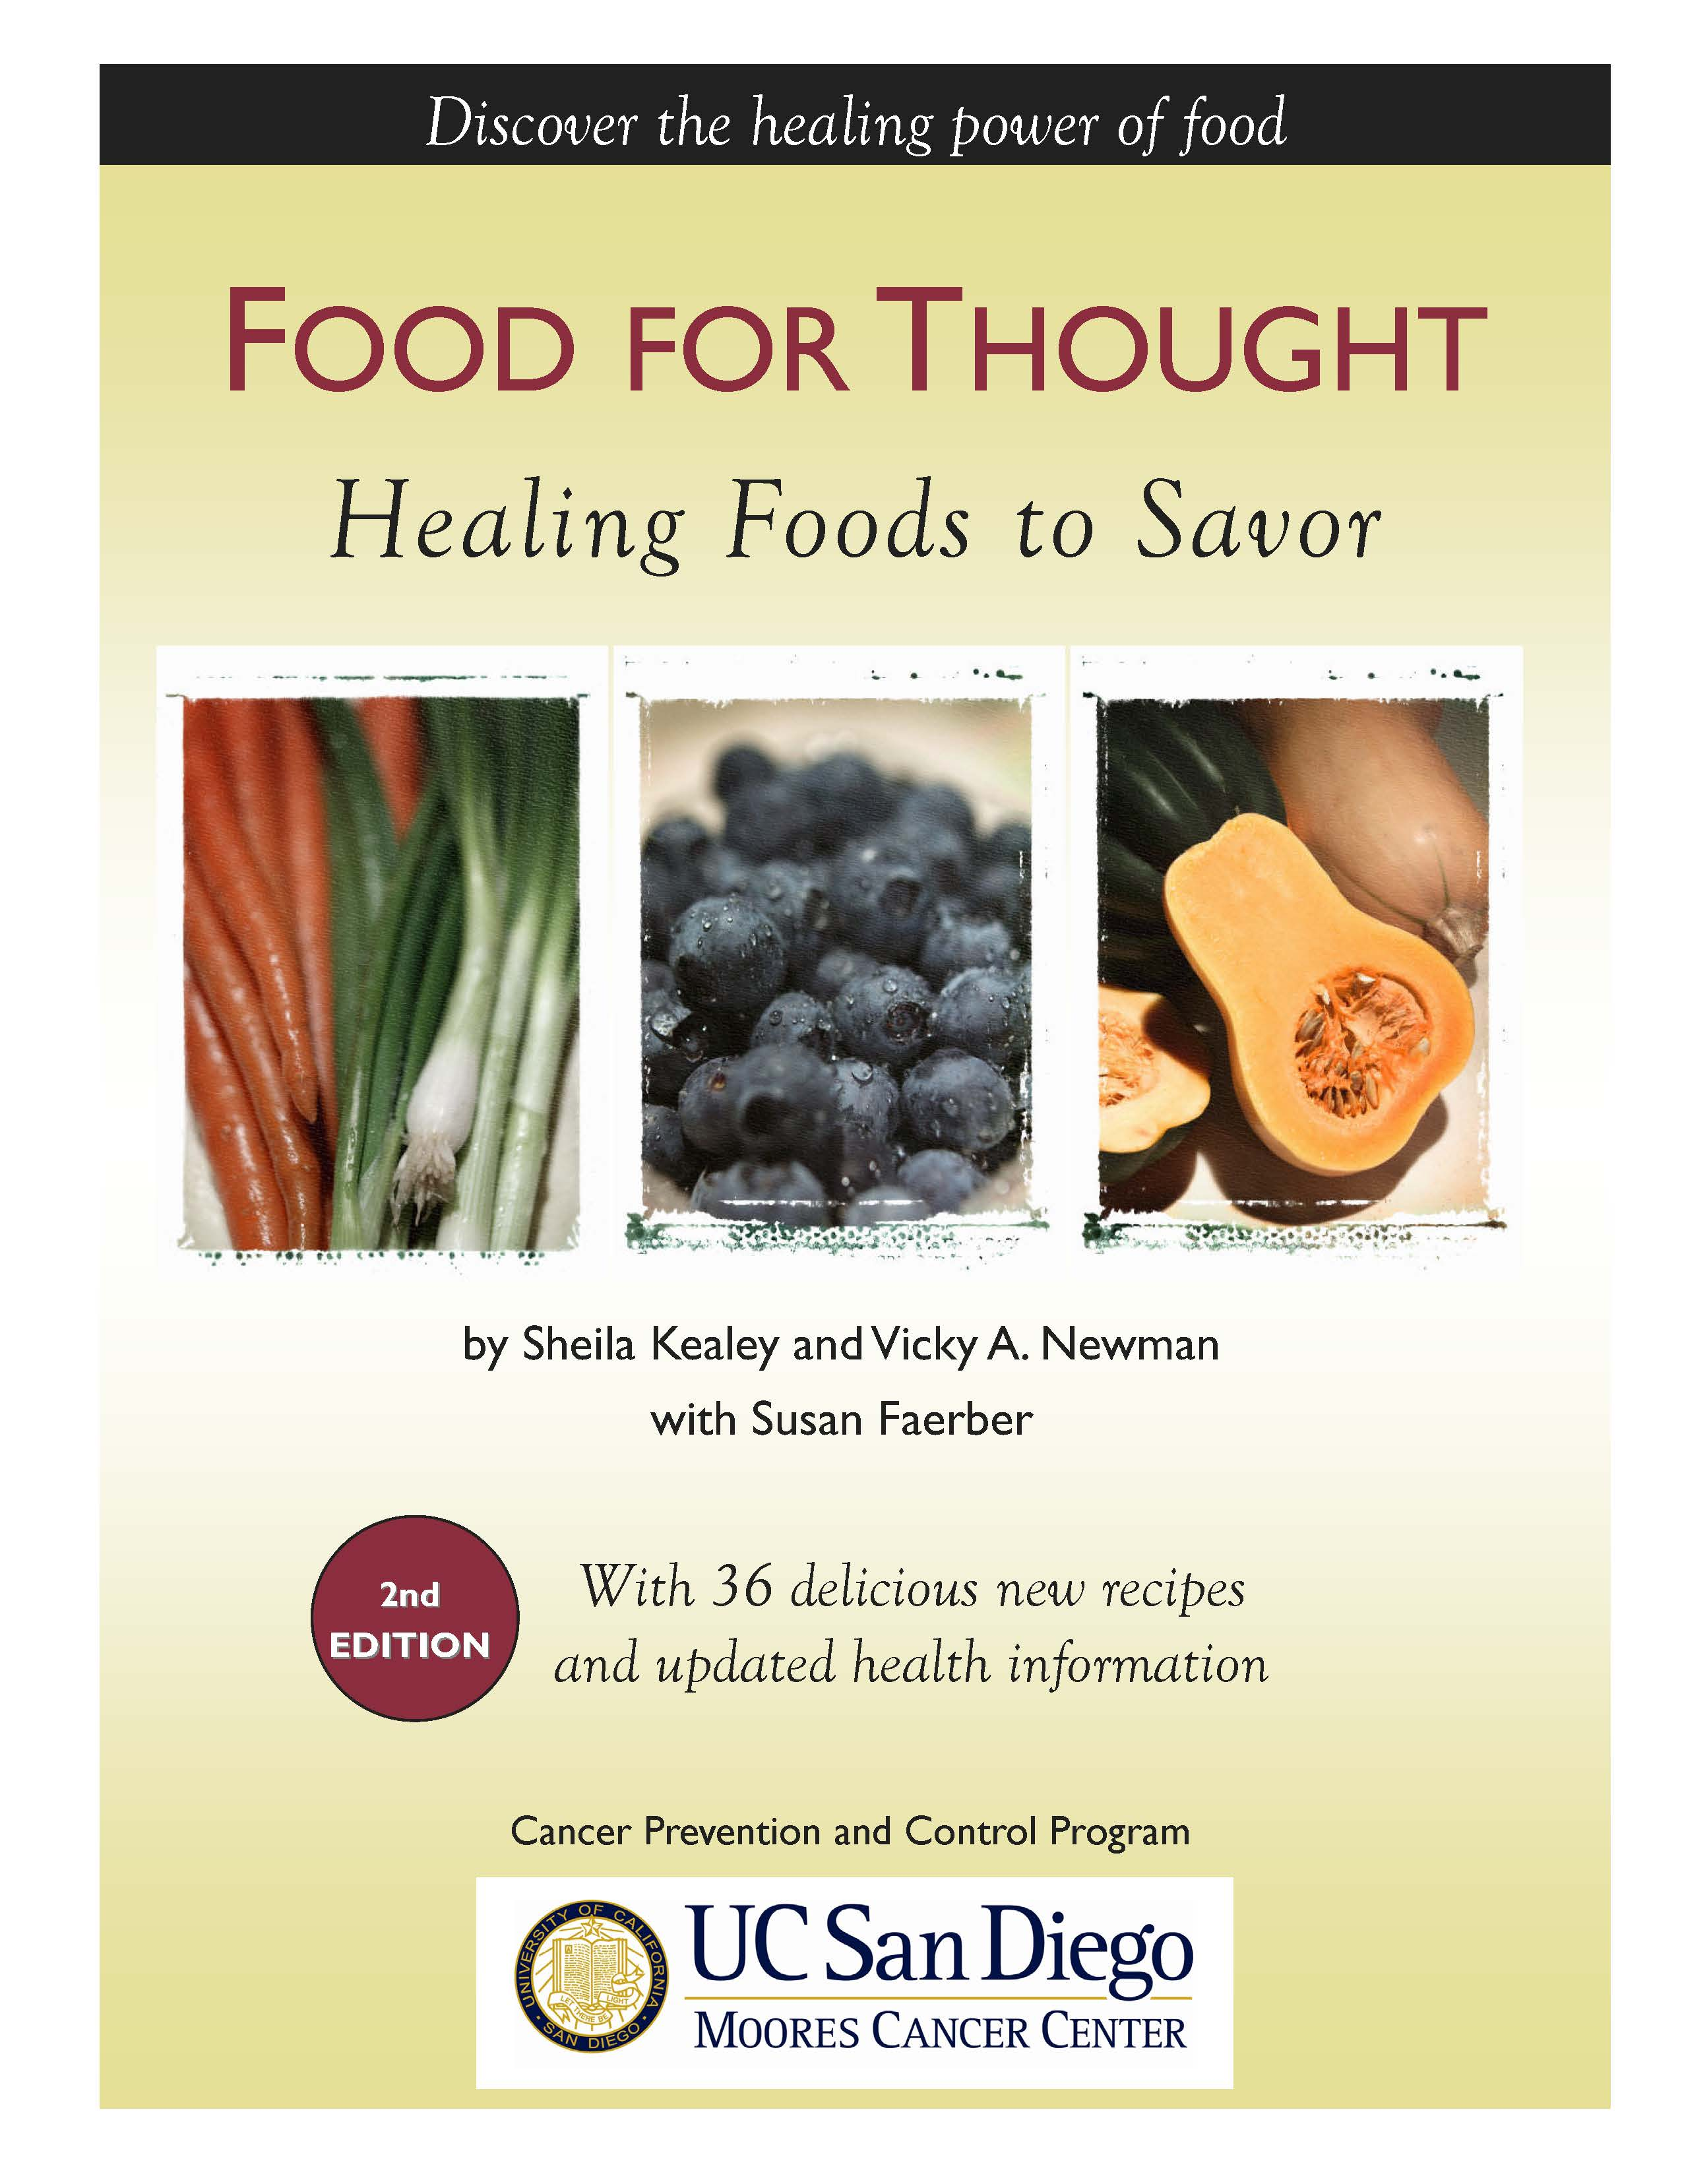 Cookbook food guide sheila kealey for Cuisine for healing